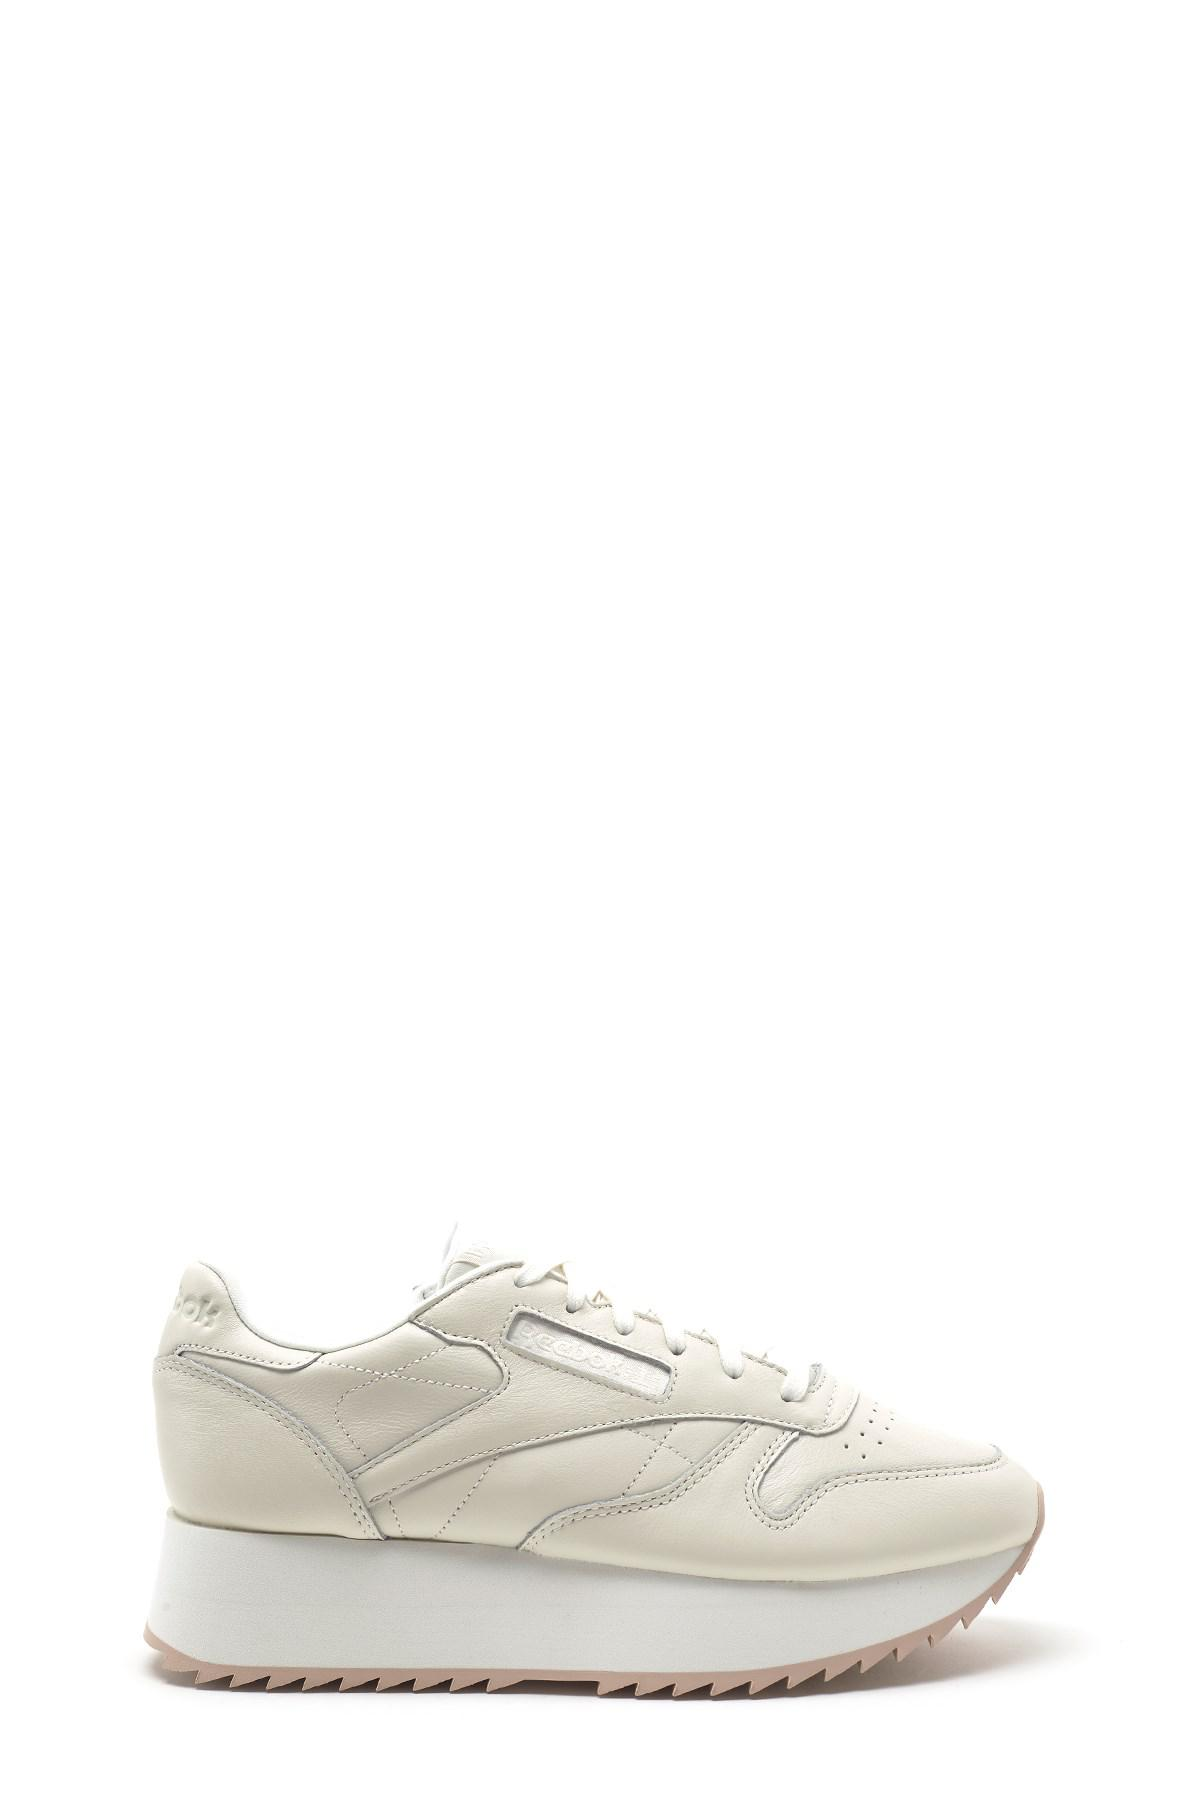 8358afe13ae86 Reebok. Women s  classic  Sneakers